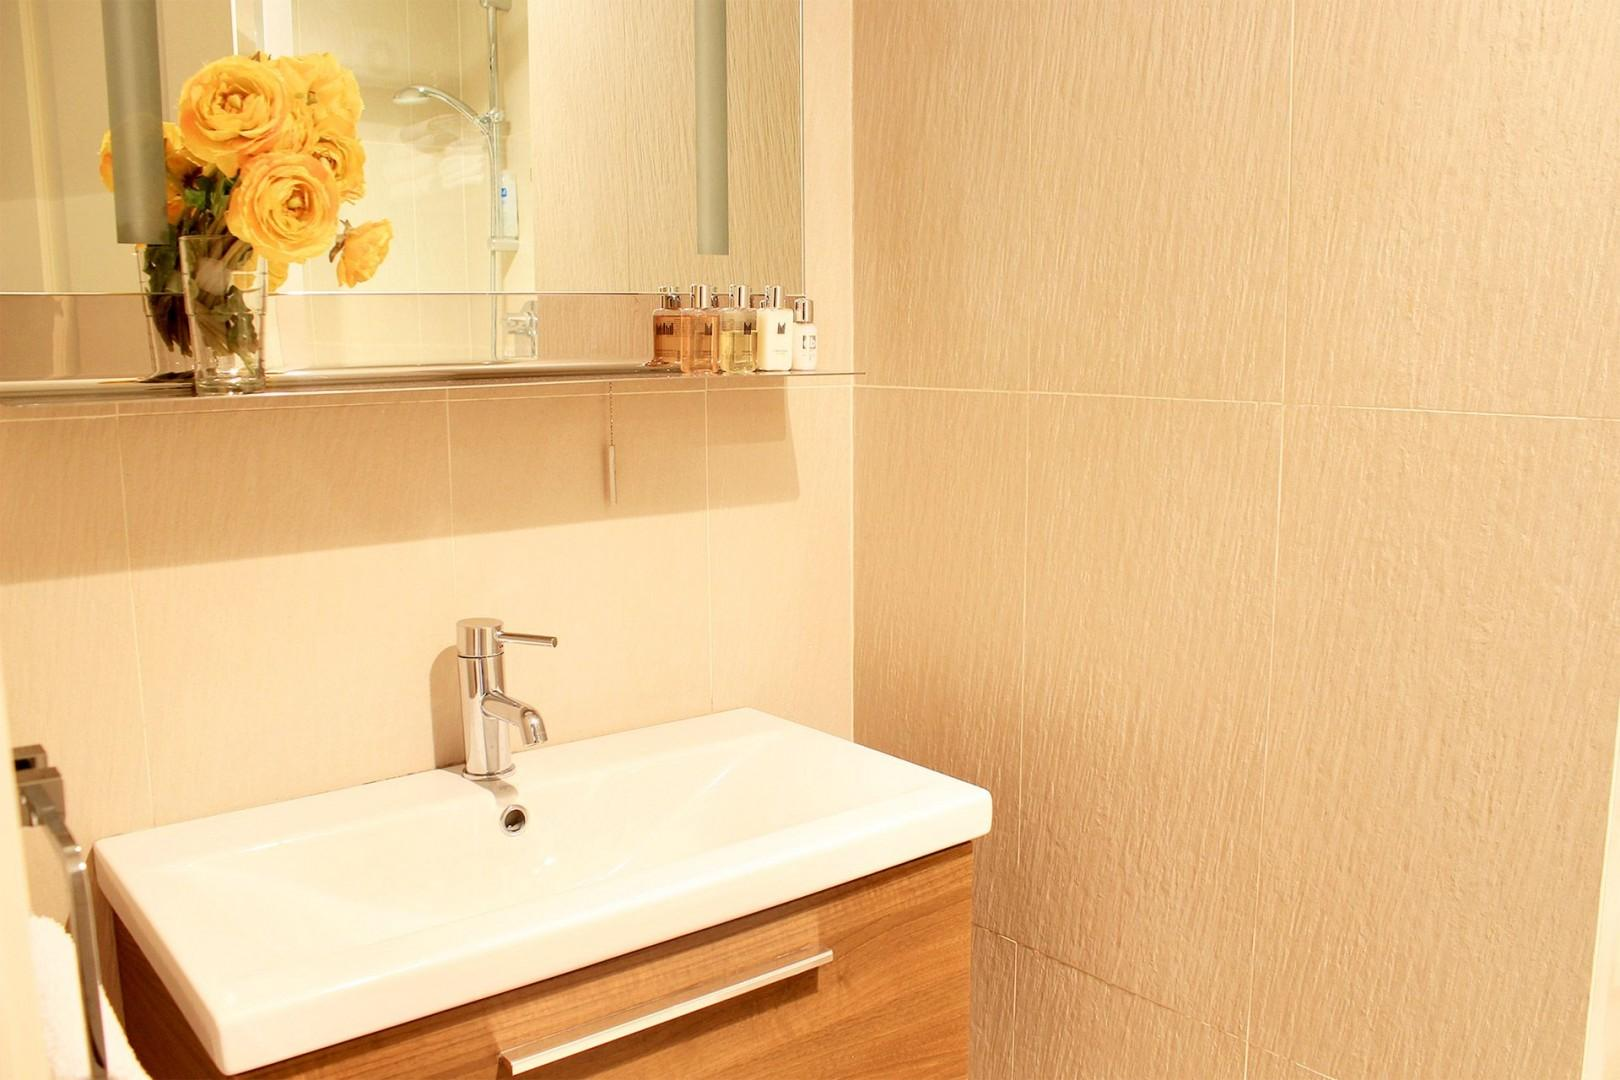 Spacious sink with storage below and overhead mirror